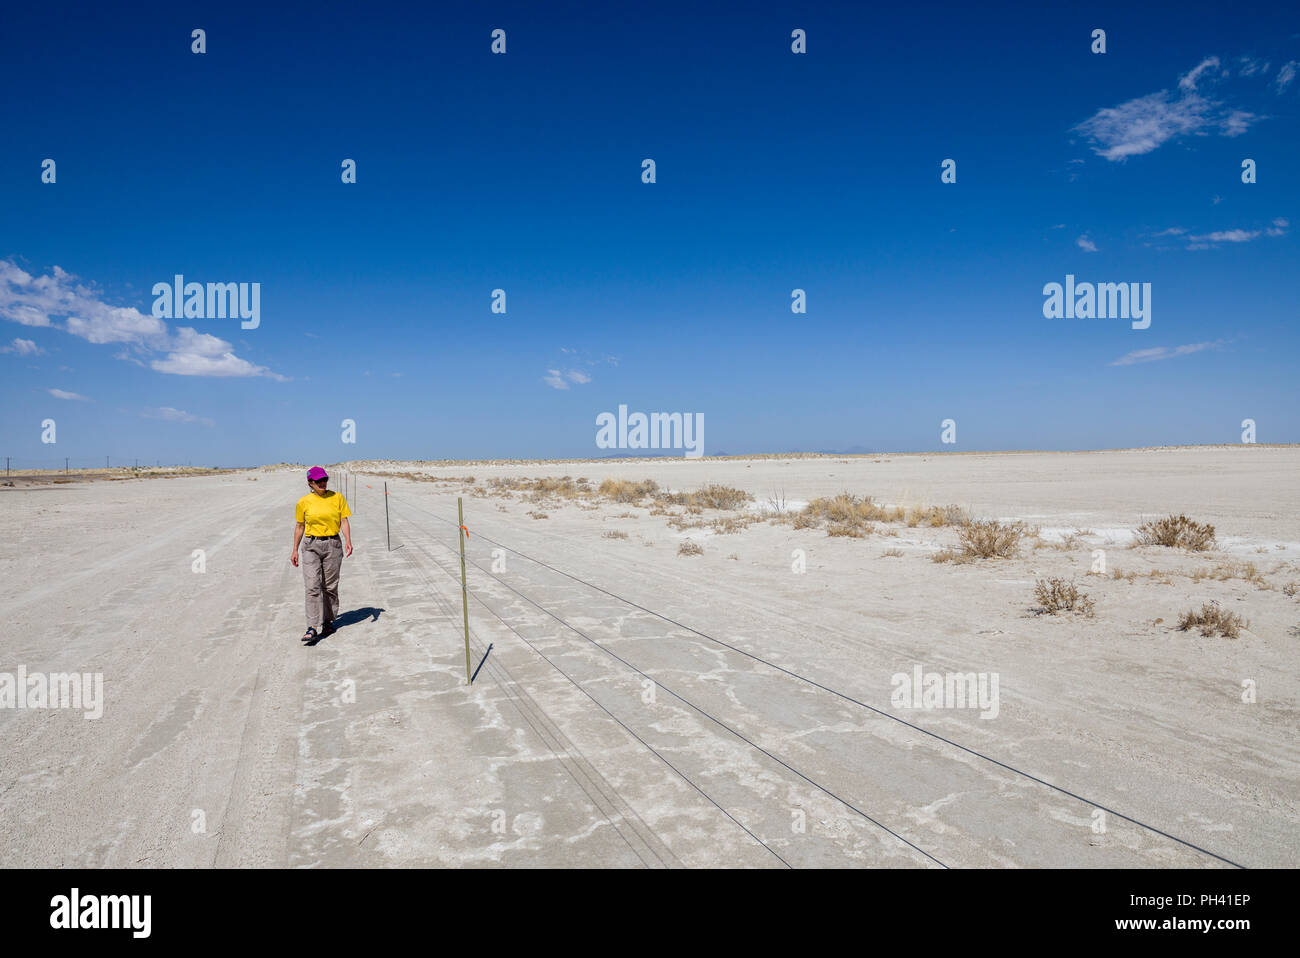 Woman walking alongside an electric fence in the Chihuahuan desert, New Mexico, USA Stock Photo